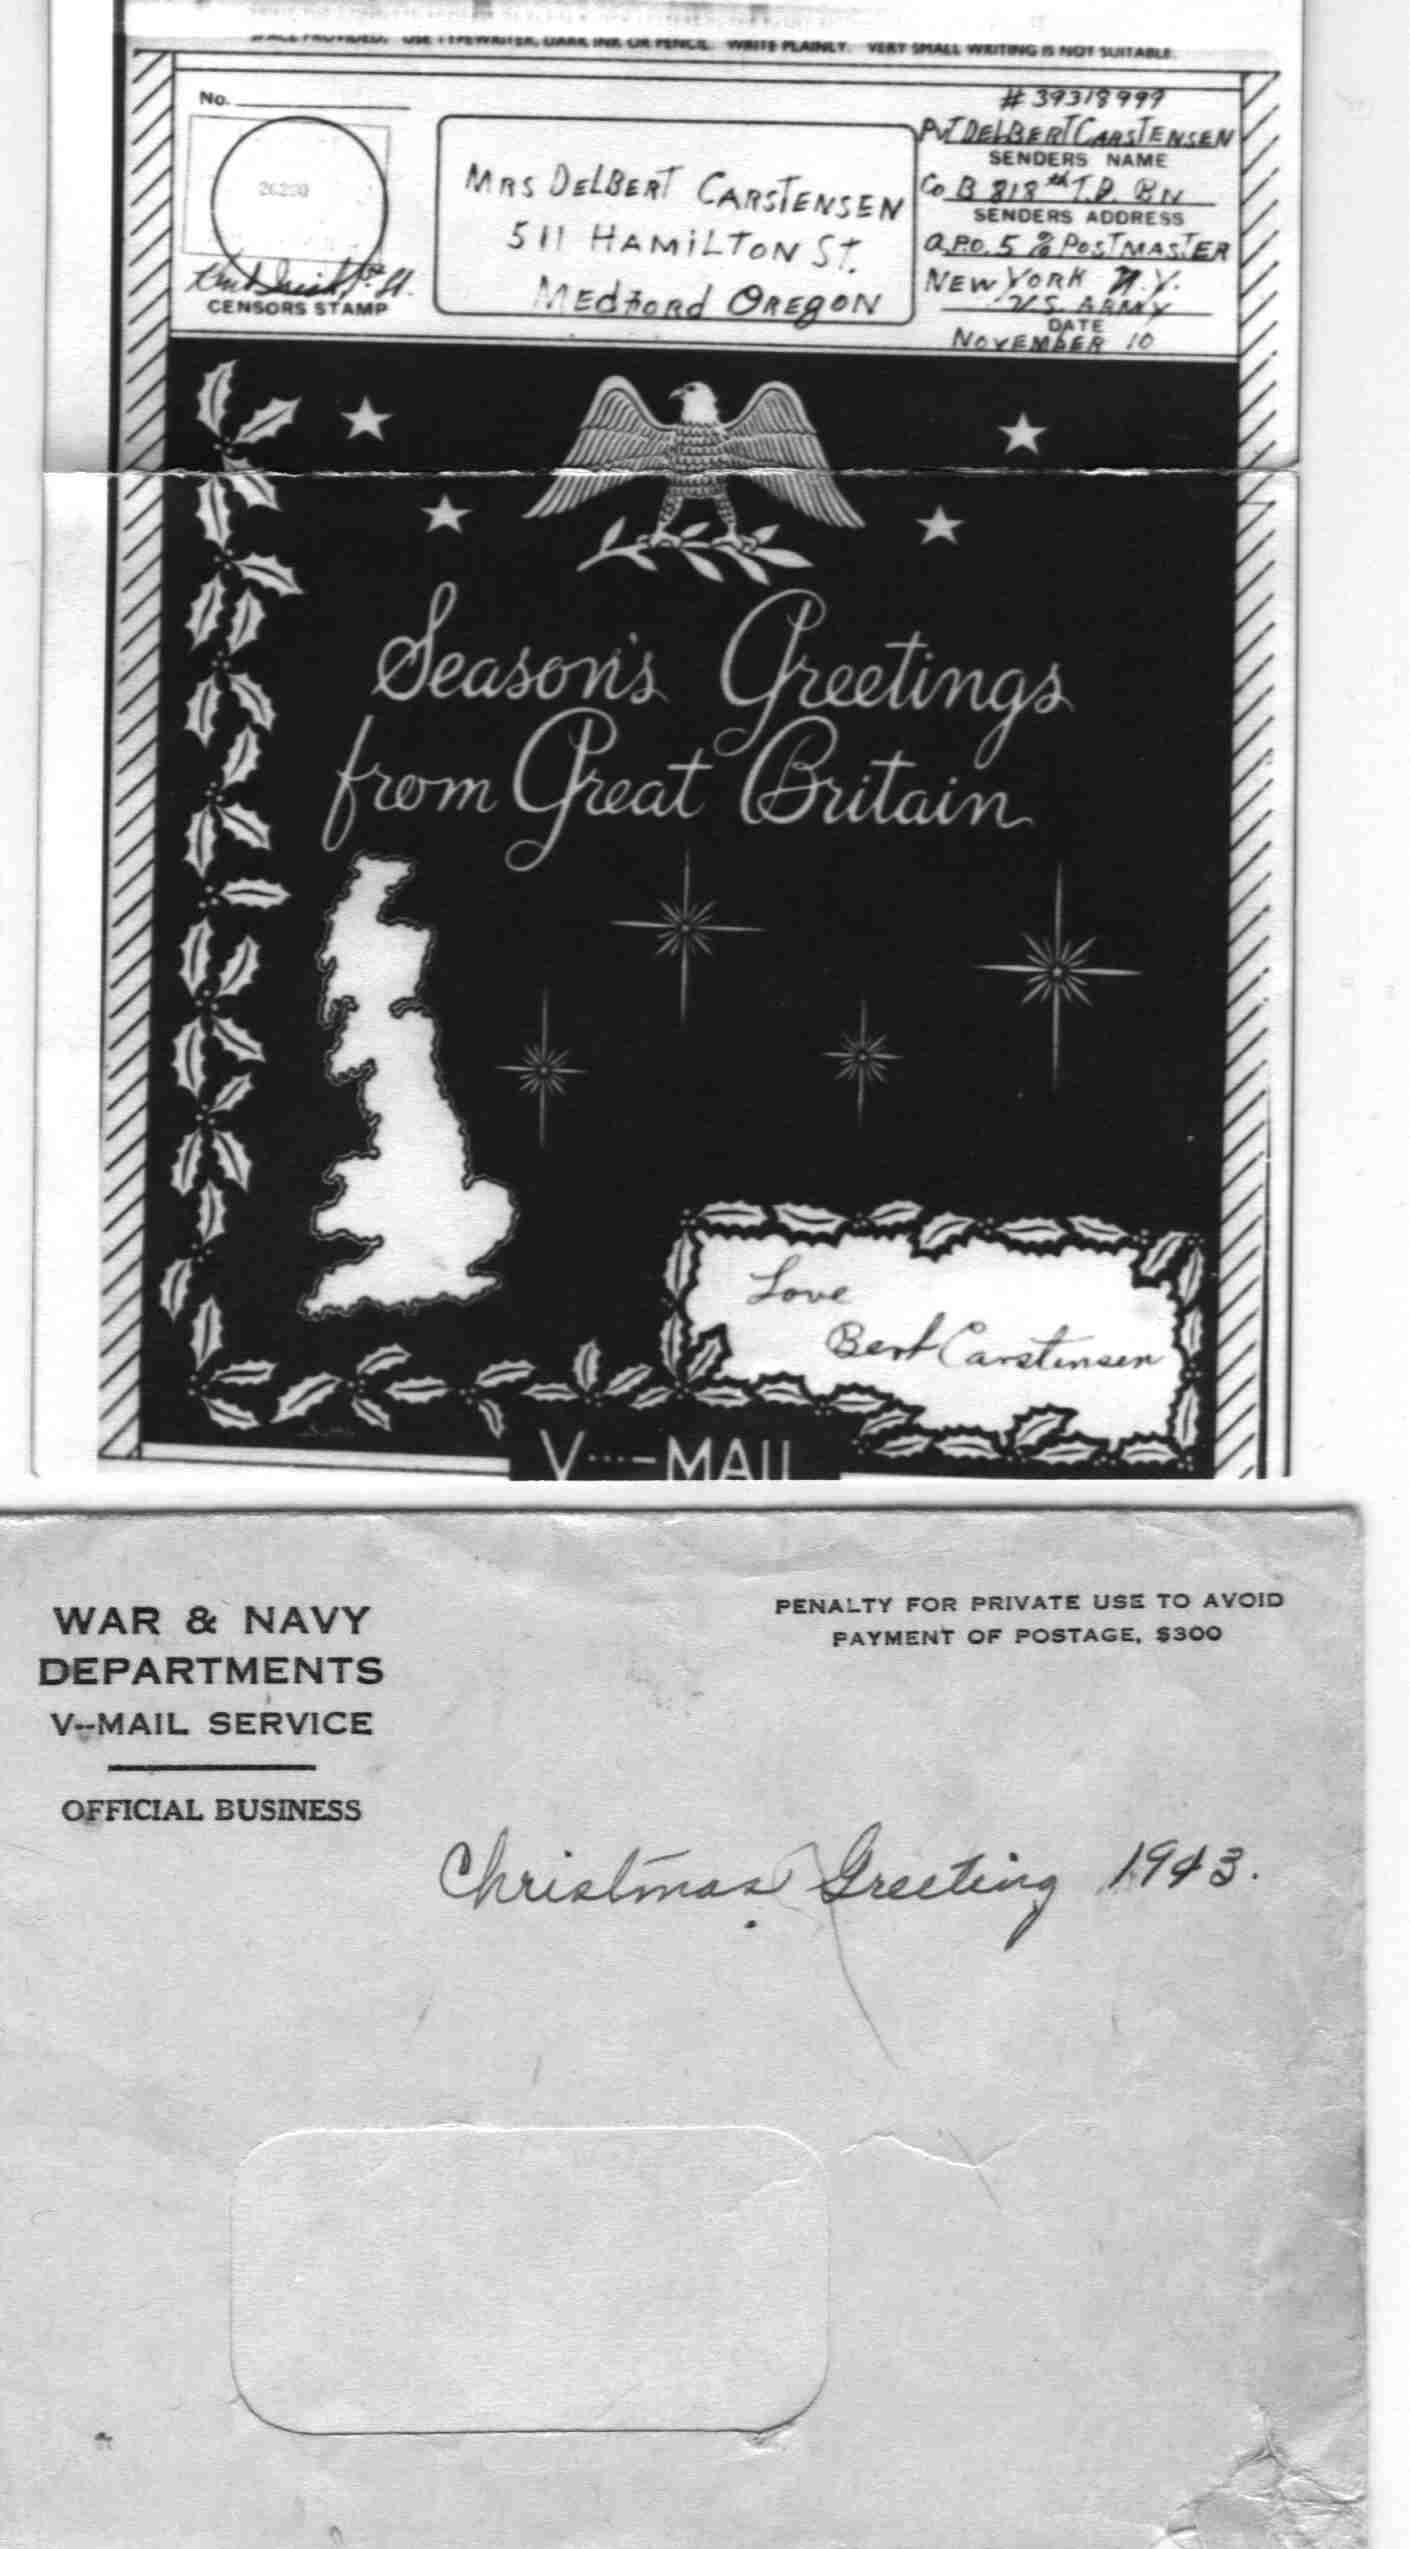 Merry Christmas V-Mail From World War II